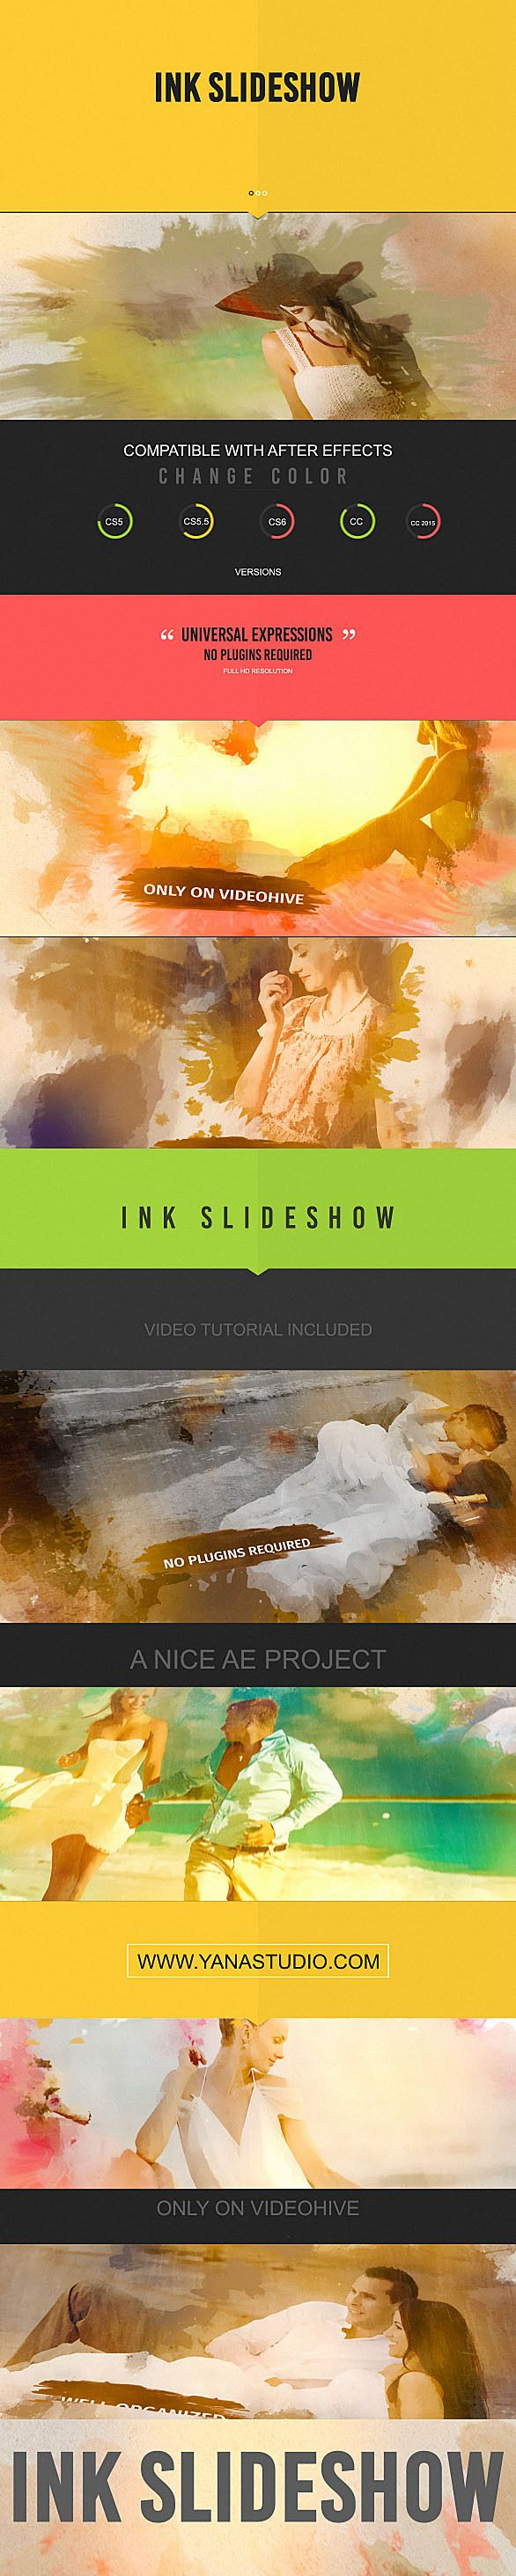 Ink Slideshow (Abstract)